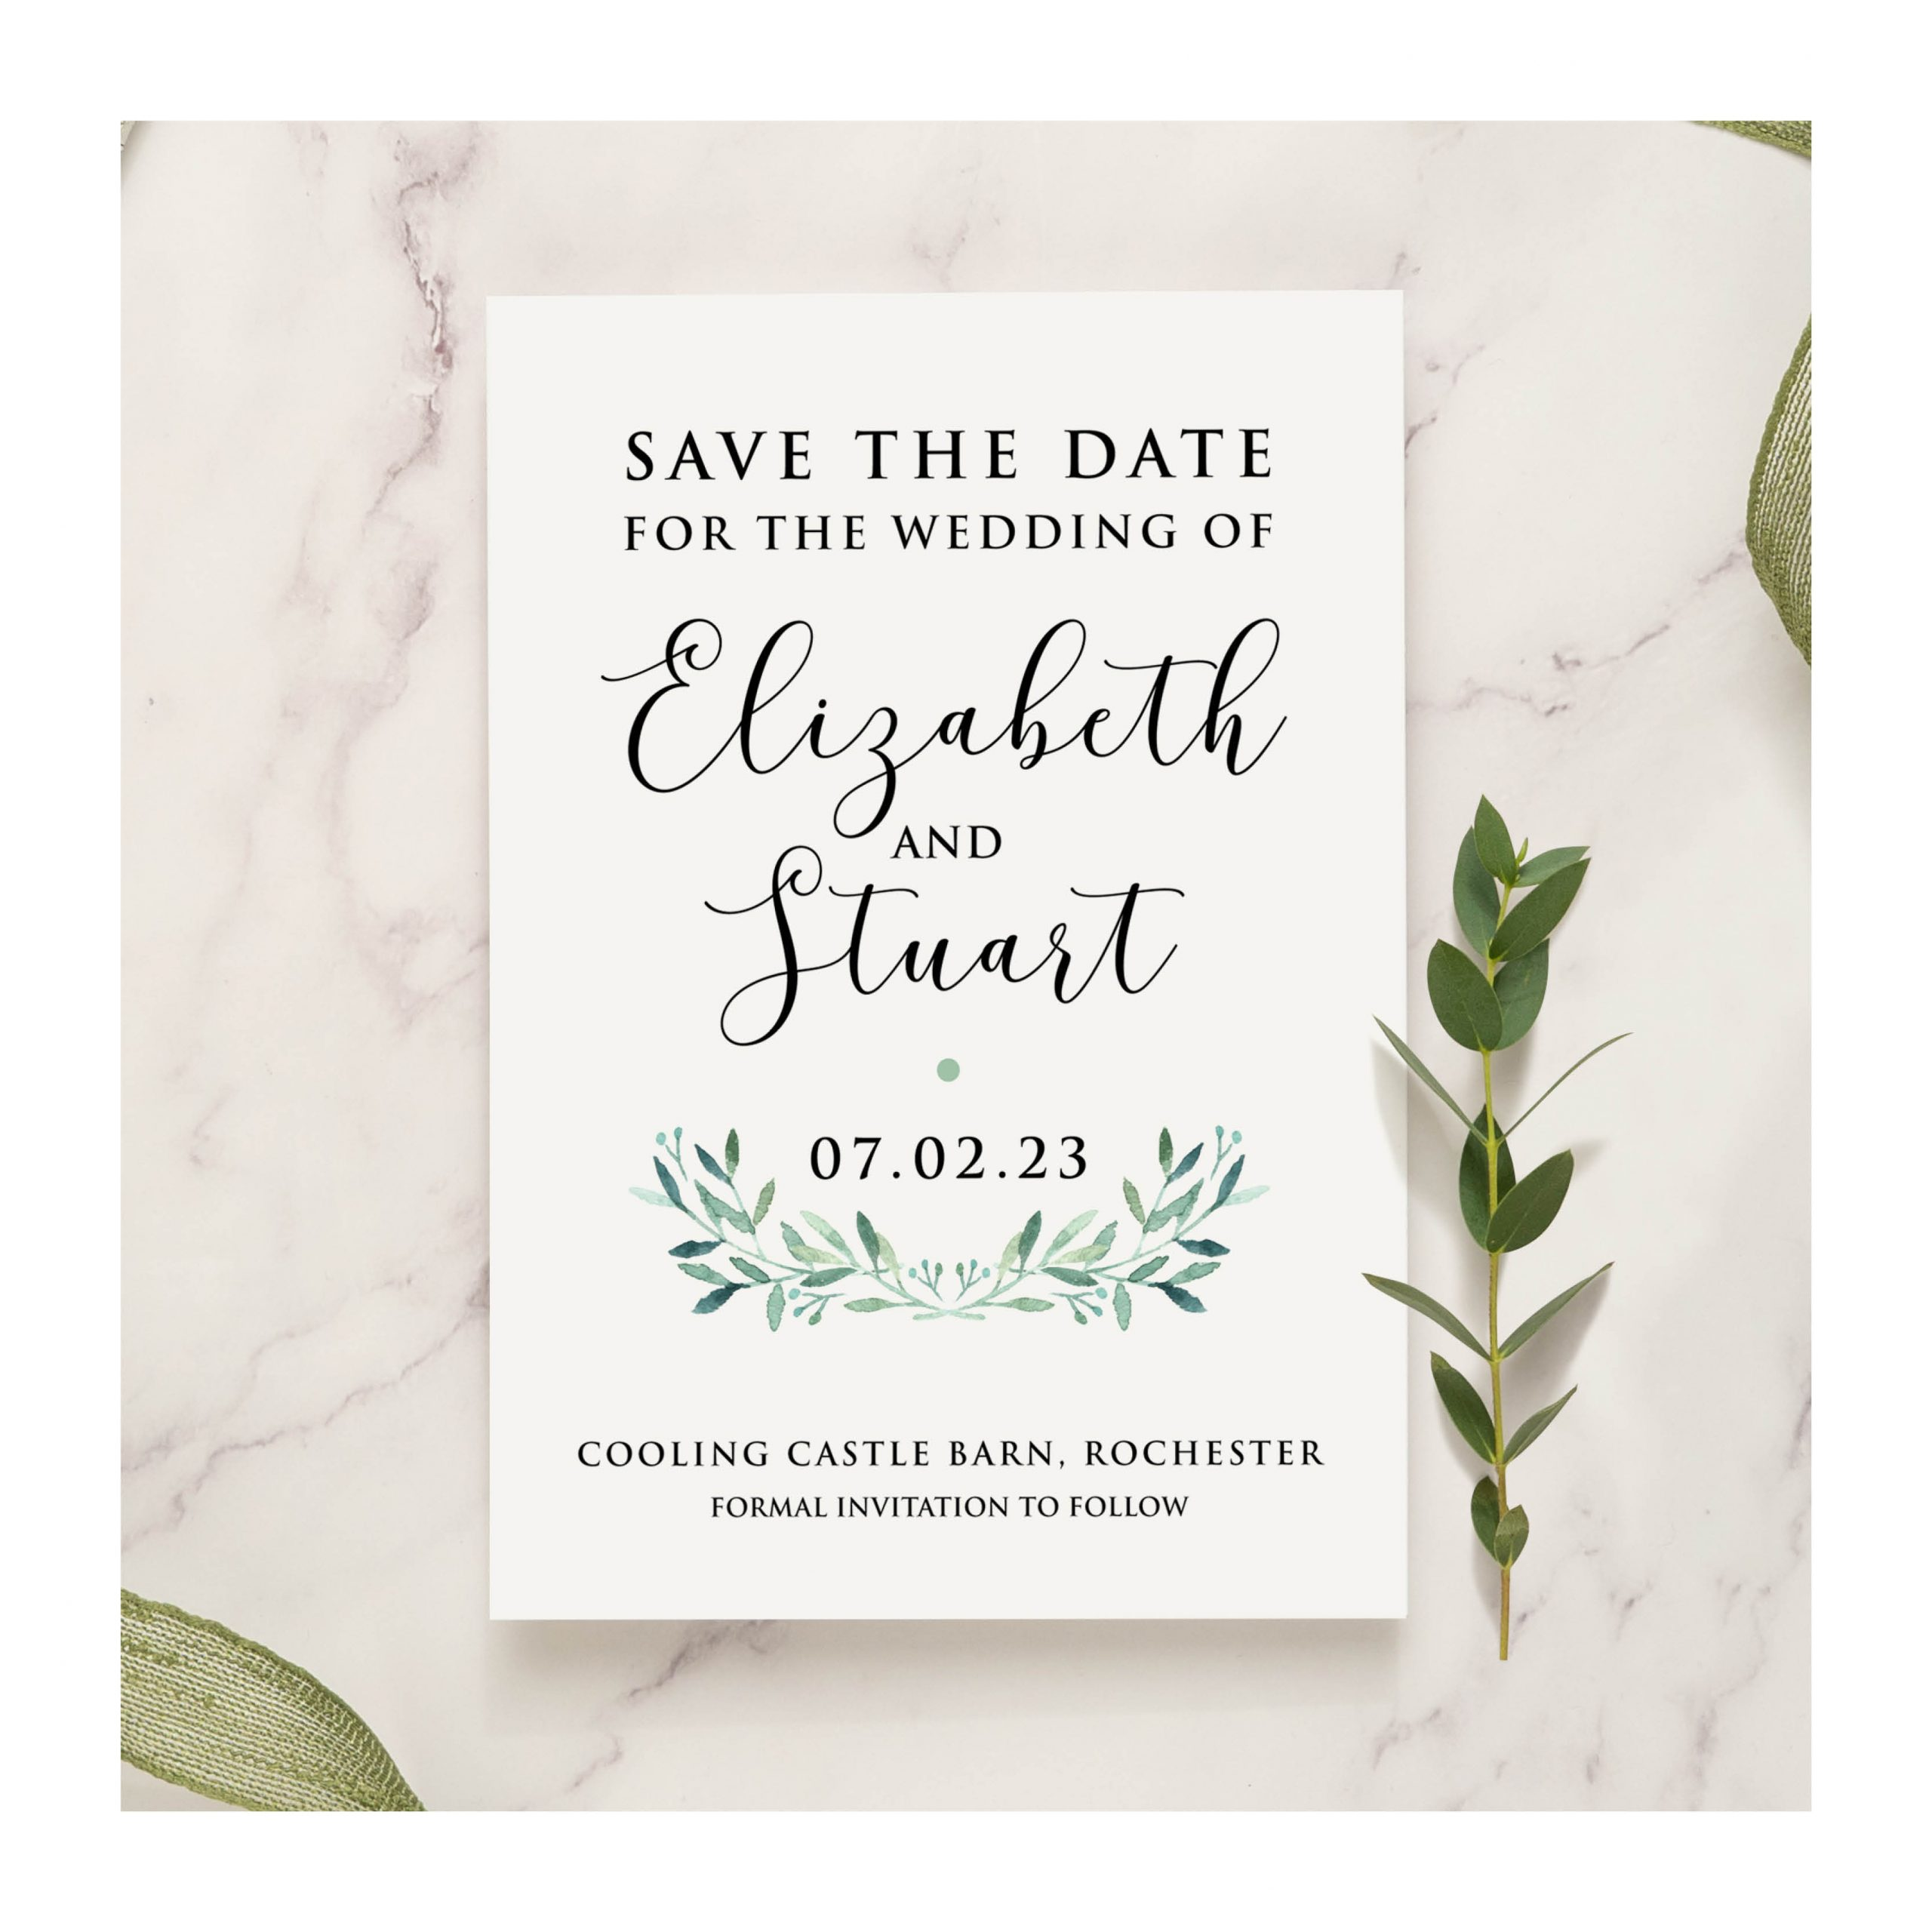 Olive wreath Save the date photo